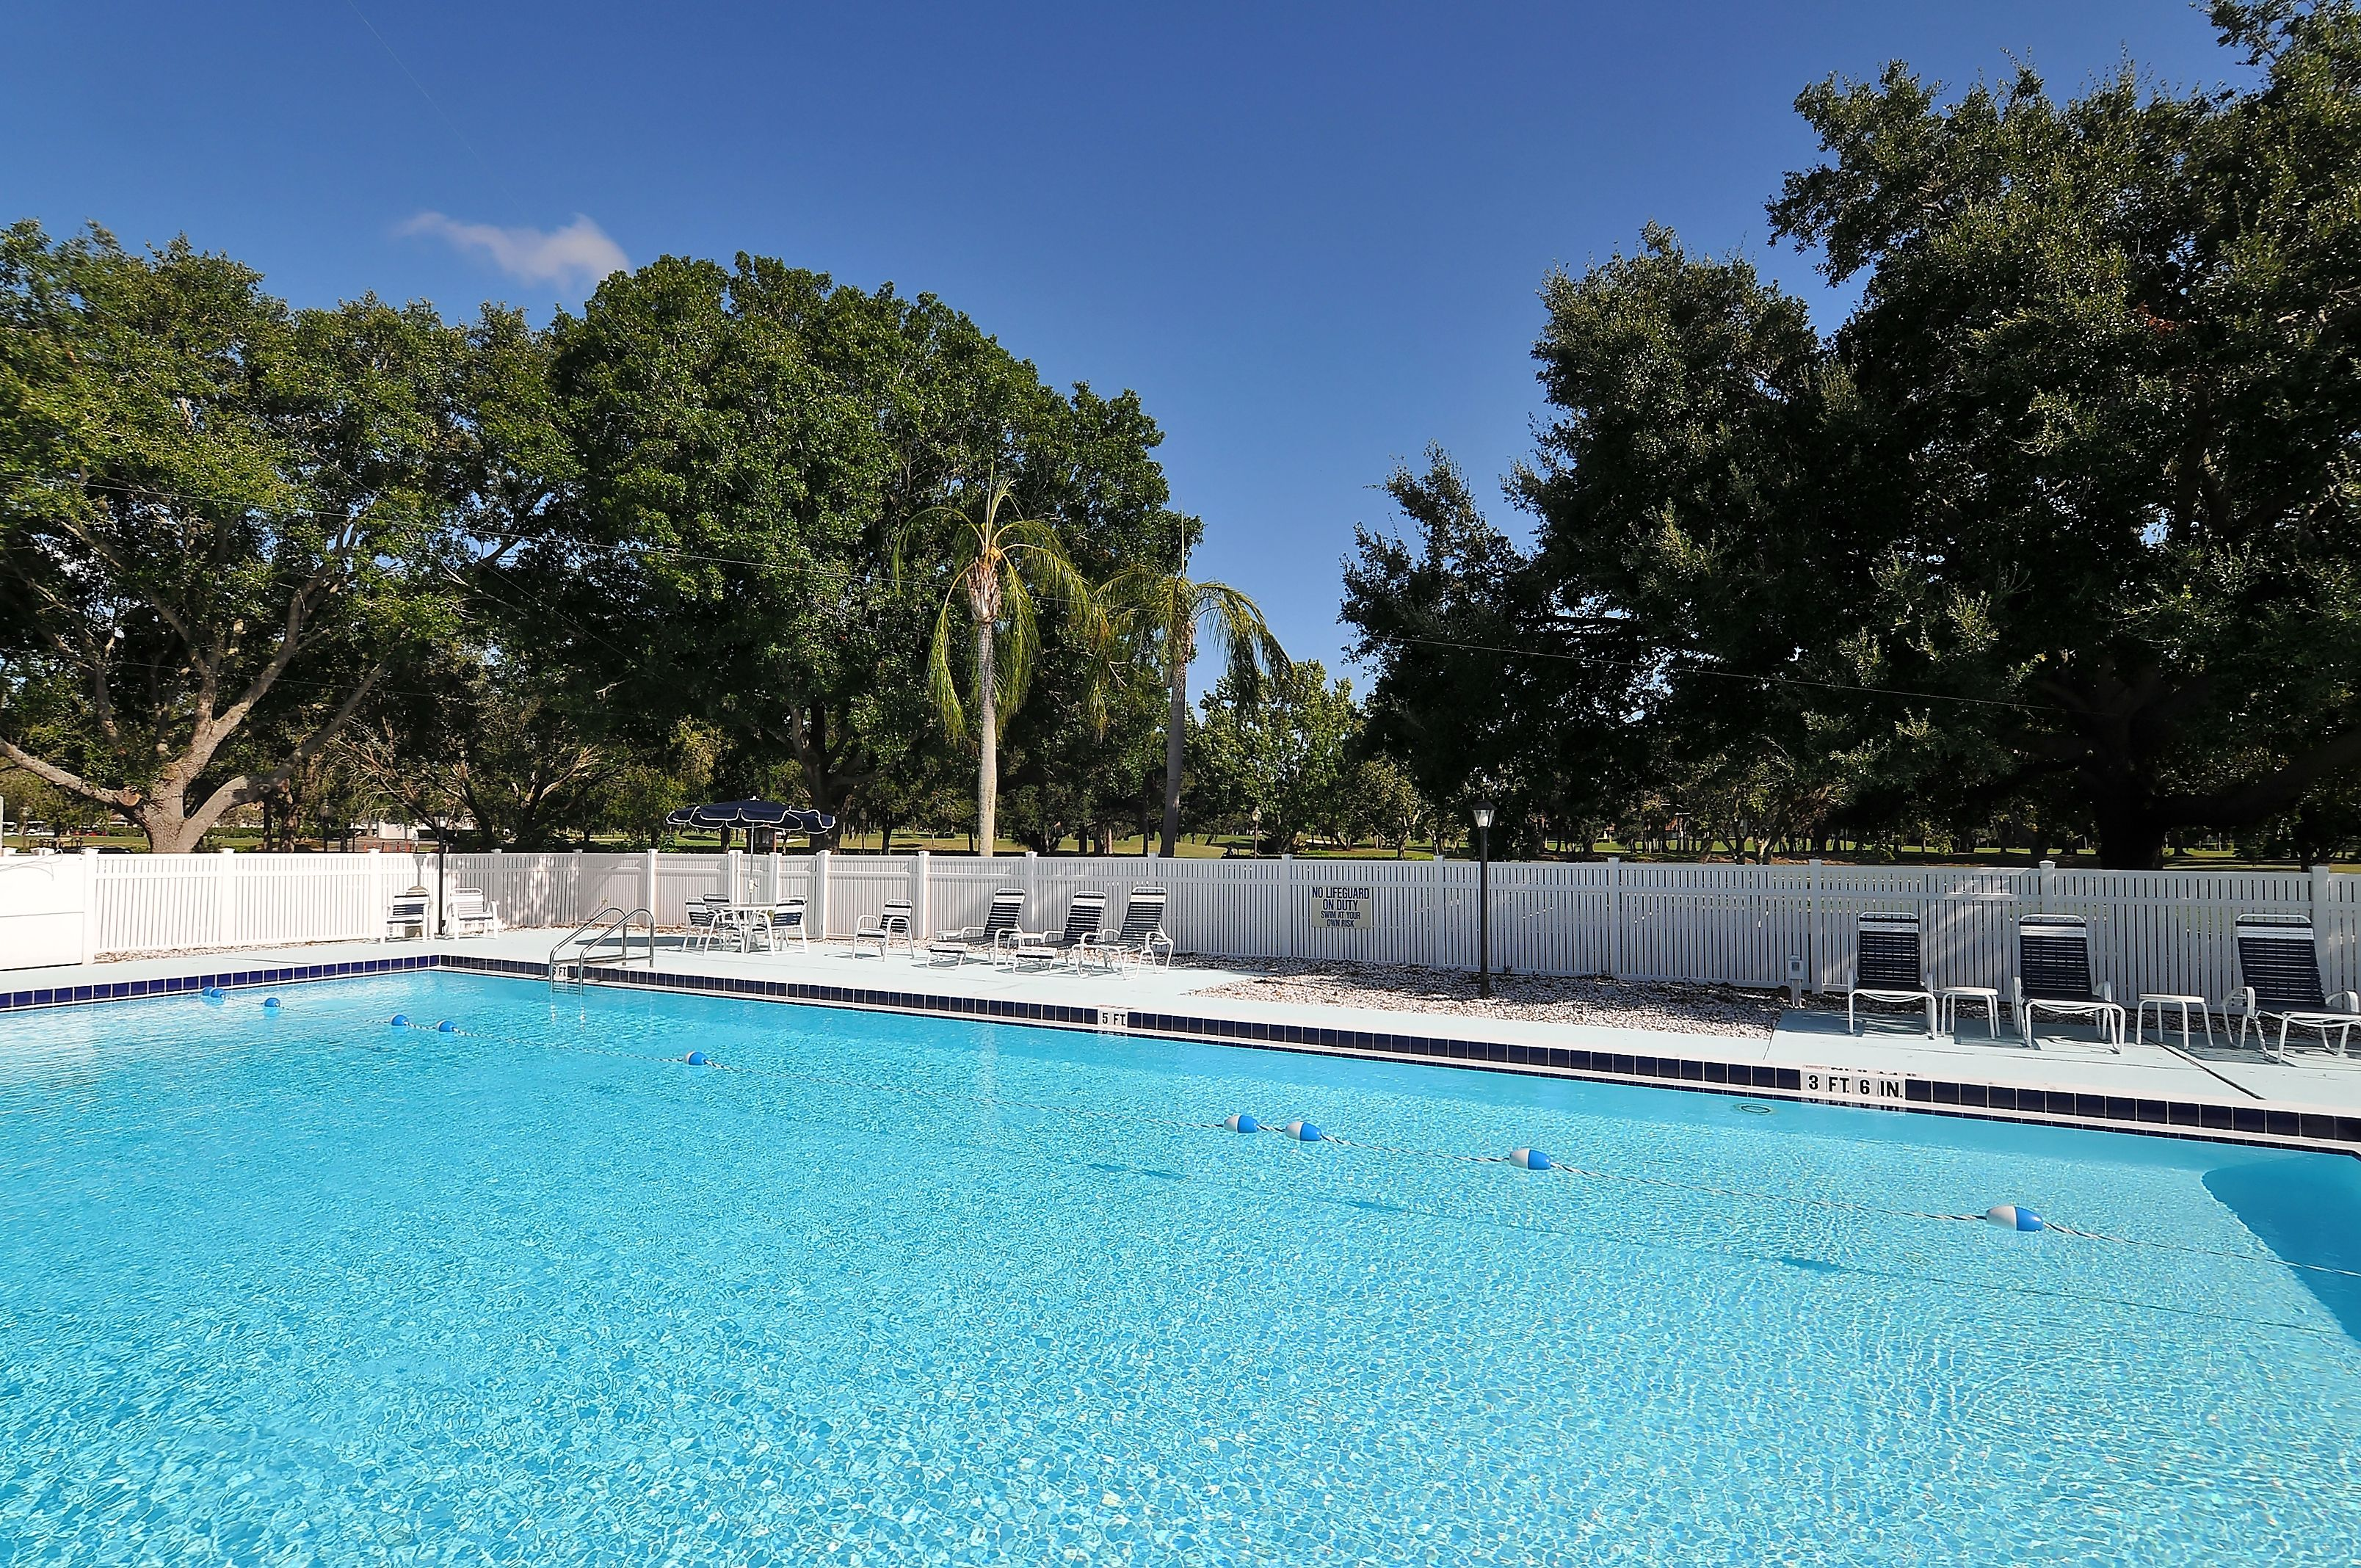 Pool at Palm Aire Country Club, Sarasota, FL